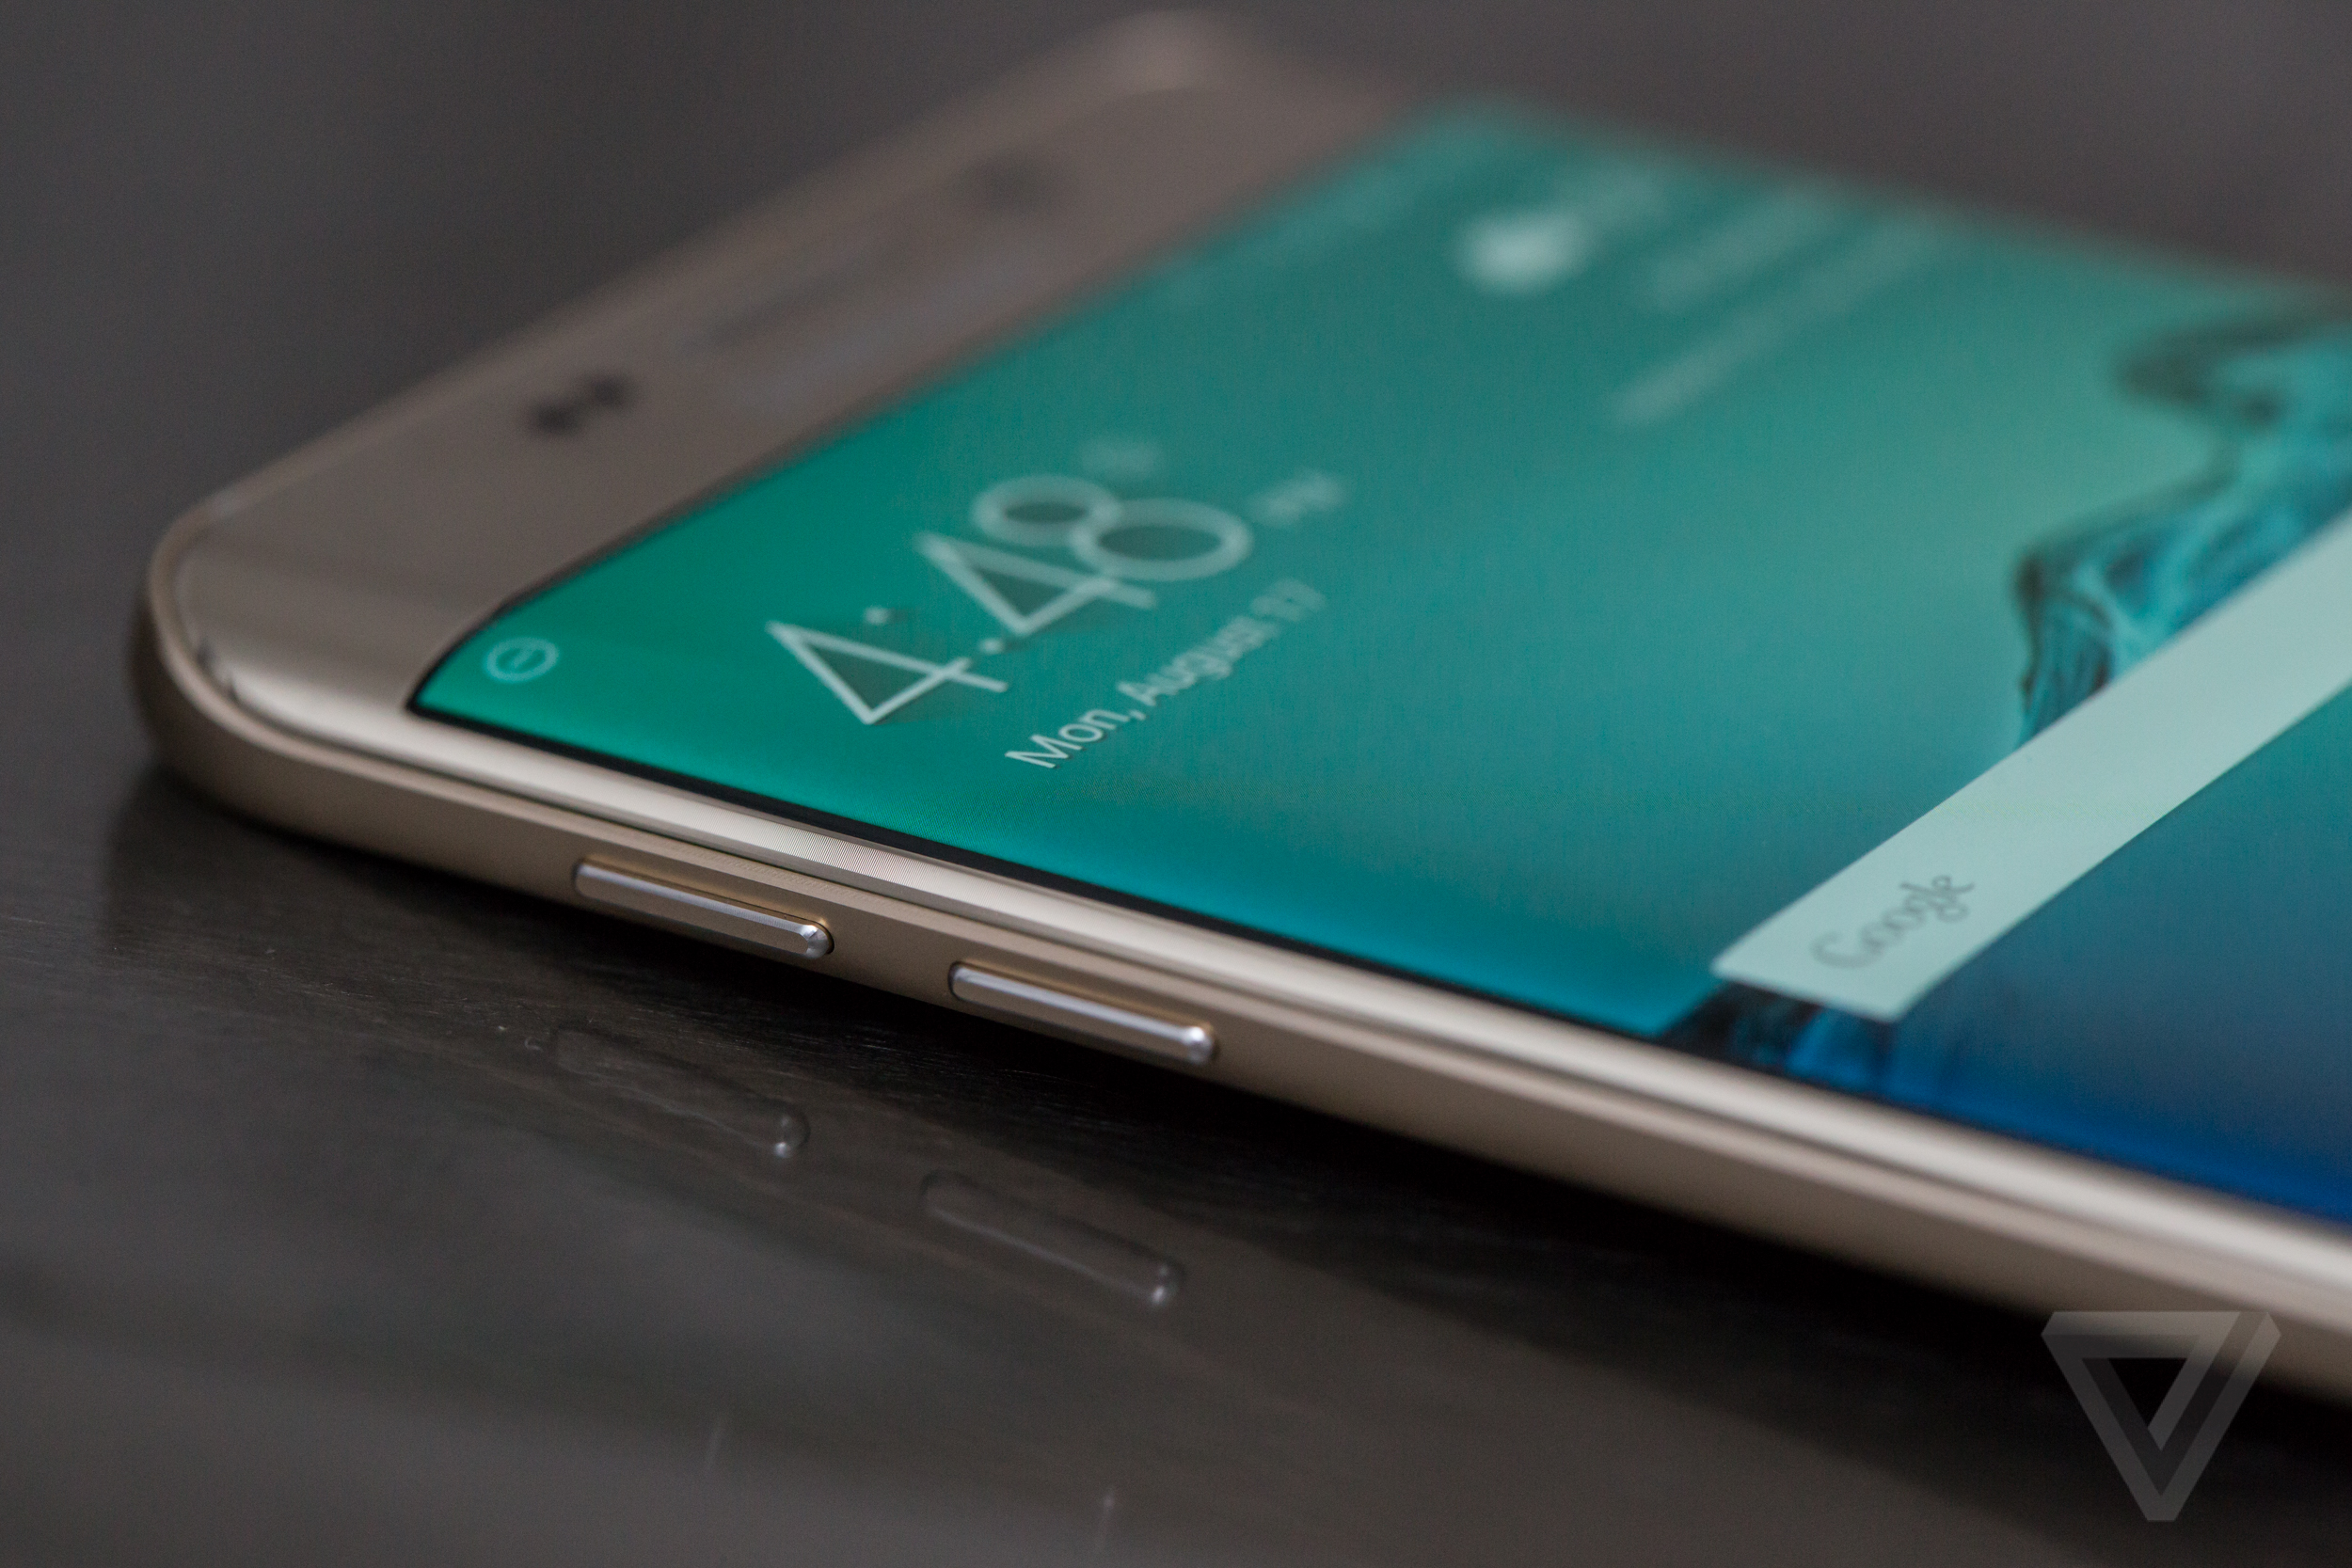 Samsung takes free giveaways to the extreme to boost Galaxy sales